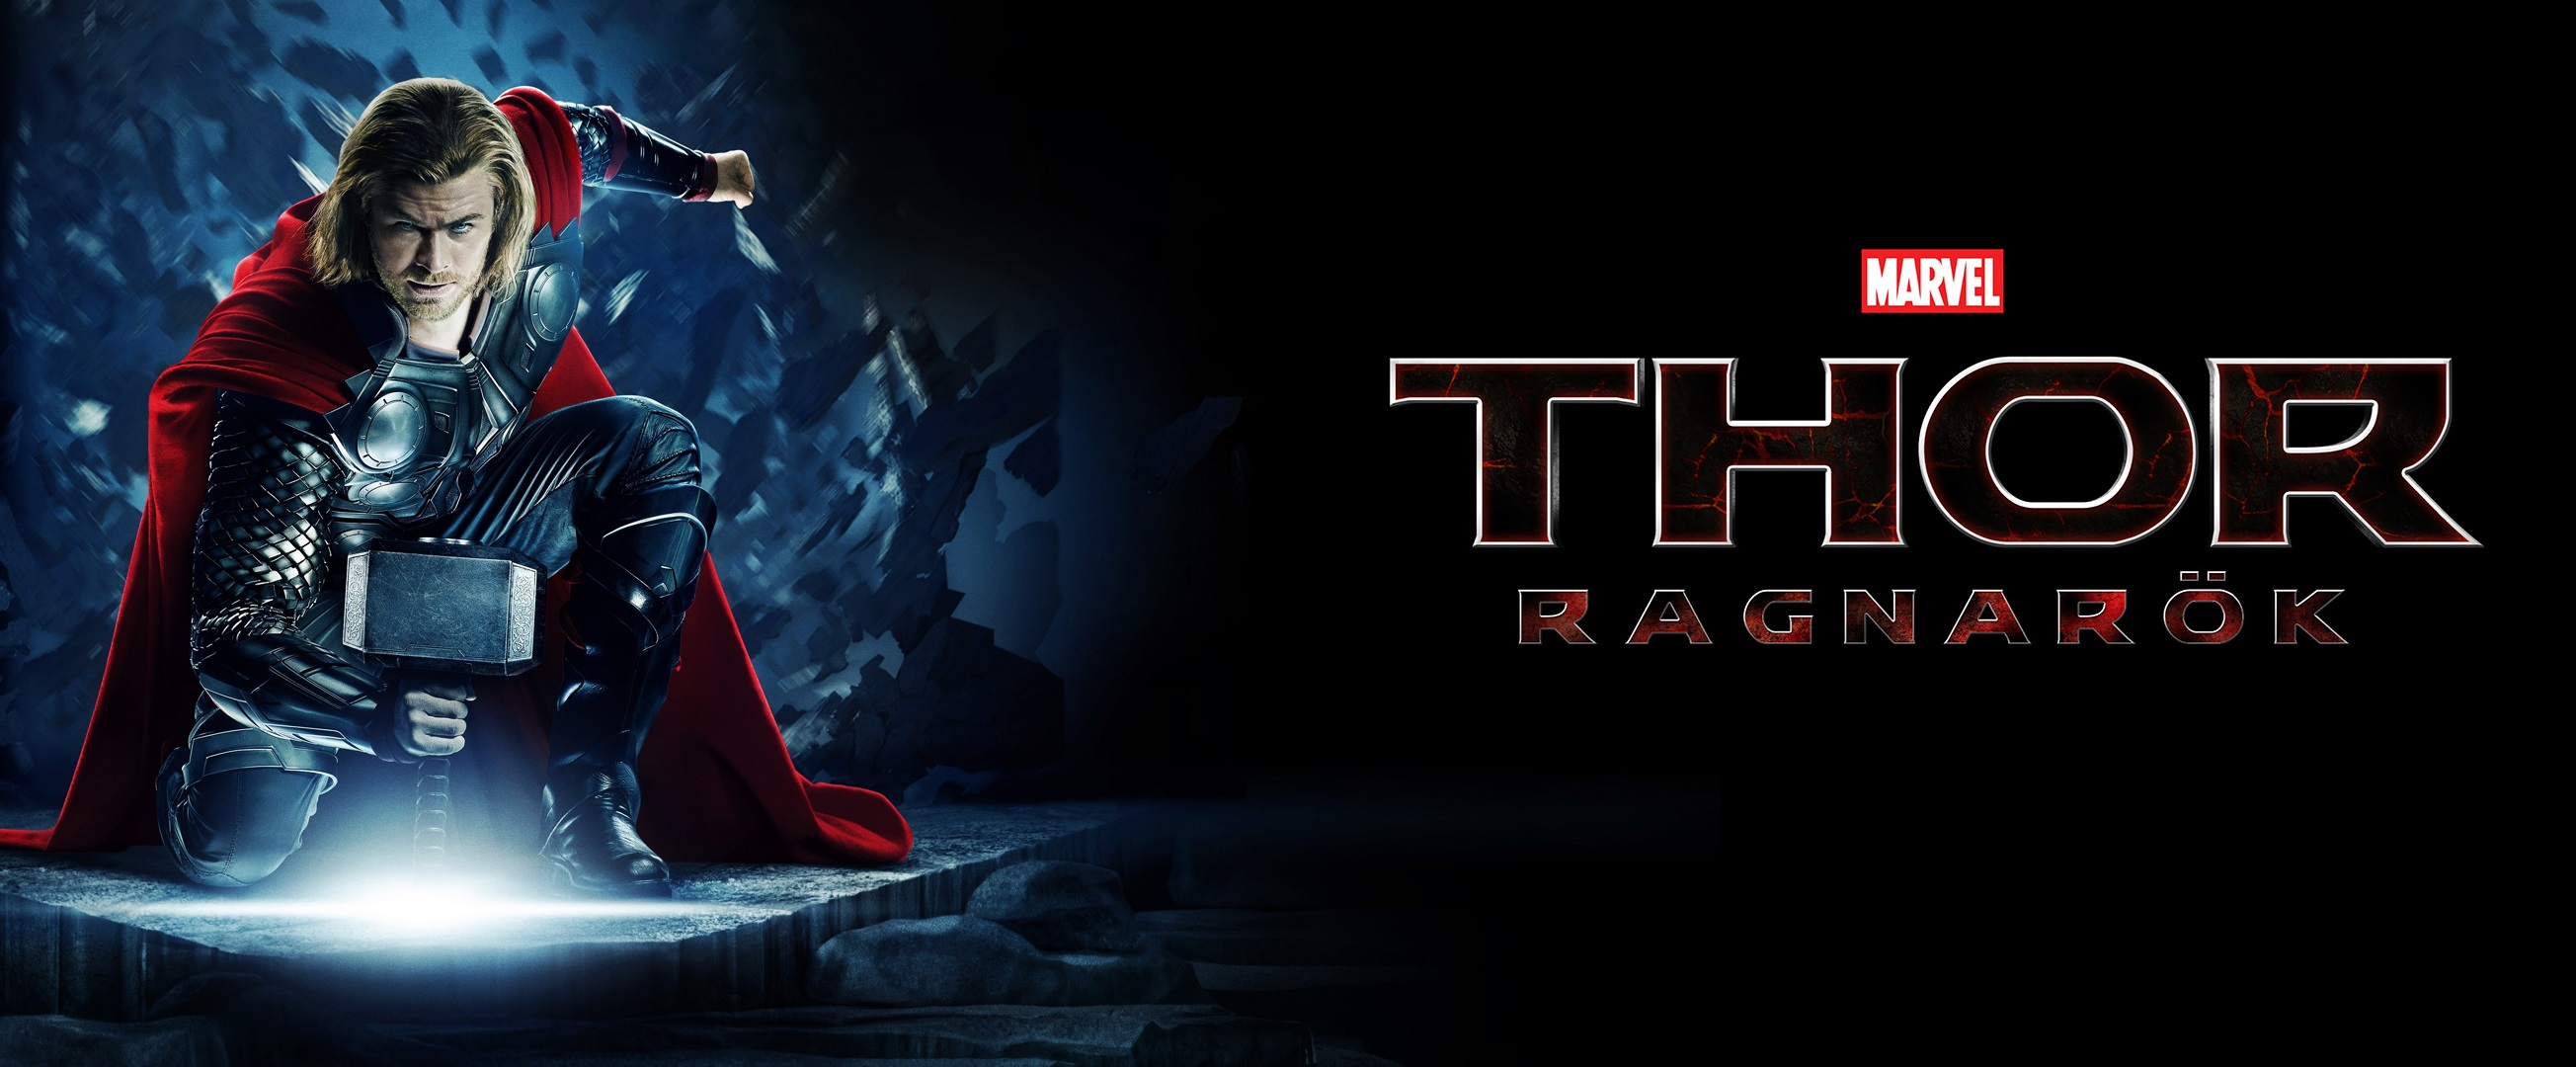 Thor Ragnarok Hd Wallpapers Free Download